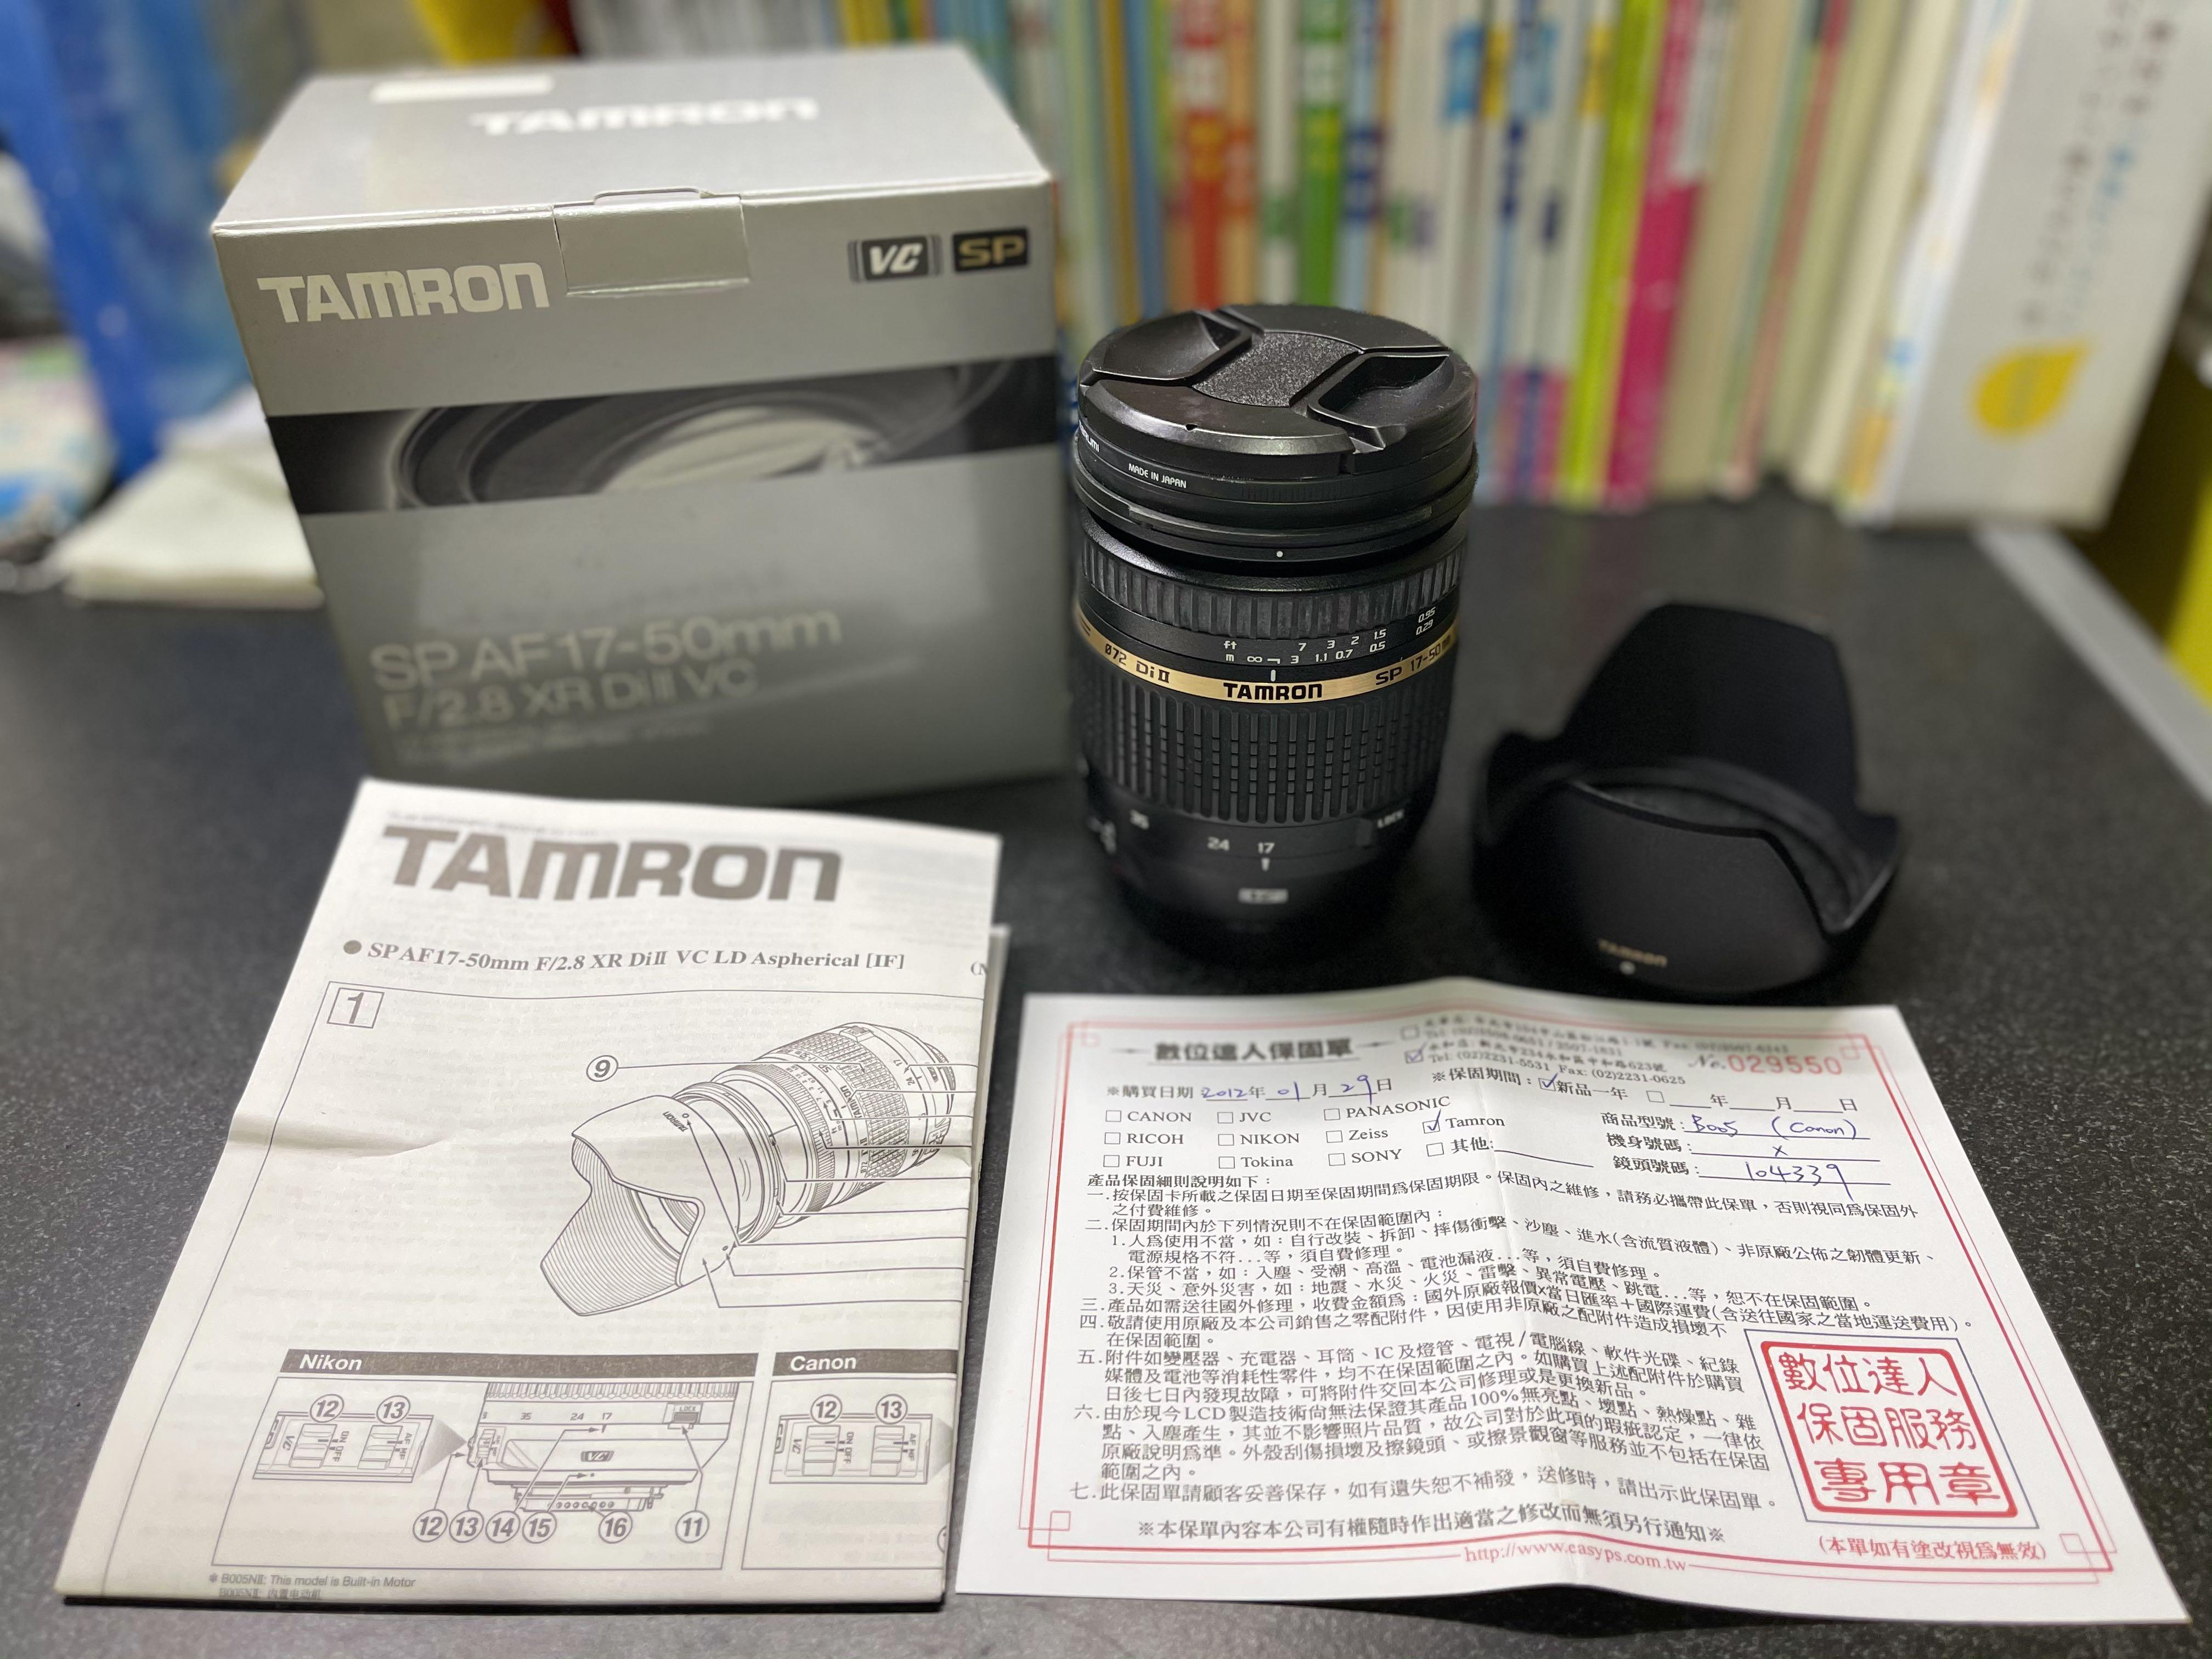 TAMRON 騰龍 SP AF 17-50mm F2.8 單眼 相機 鏡頭 for Canon